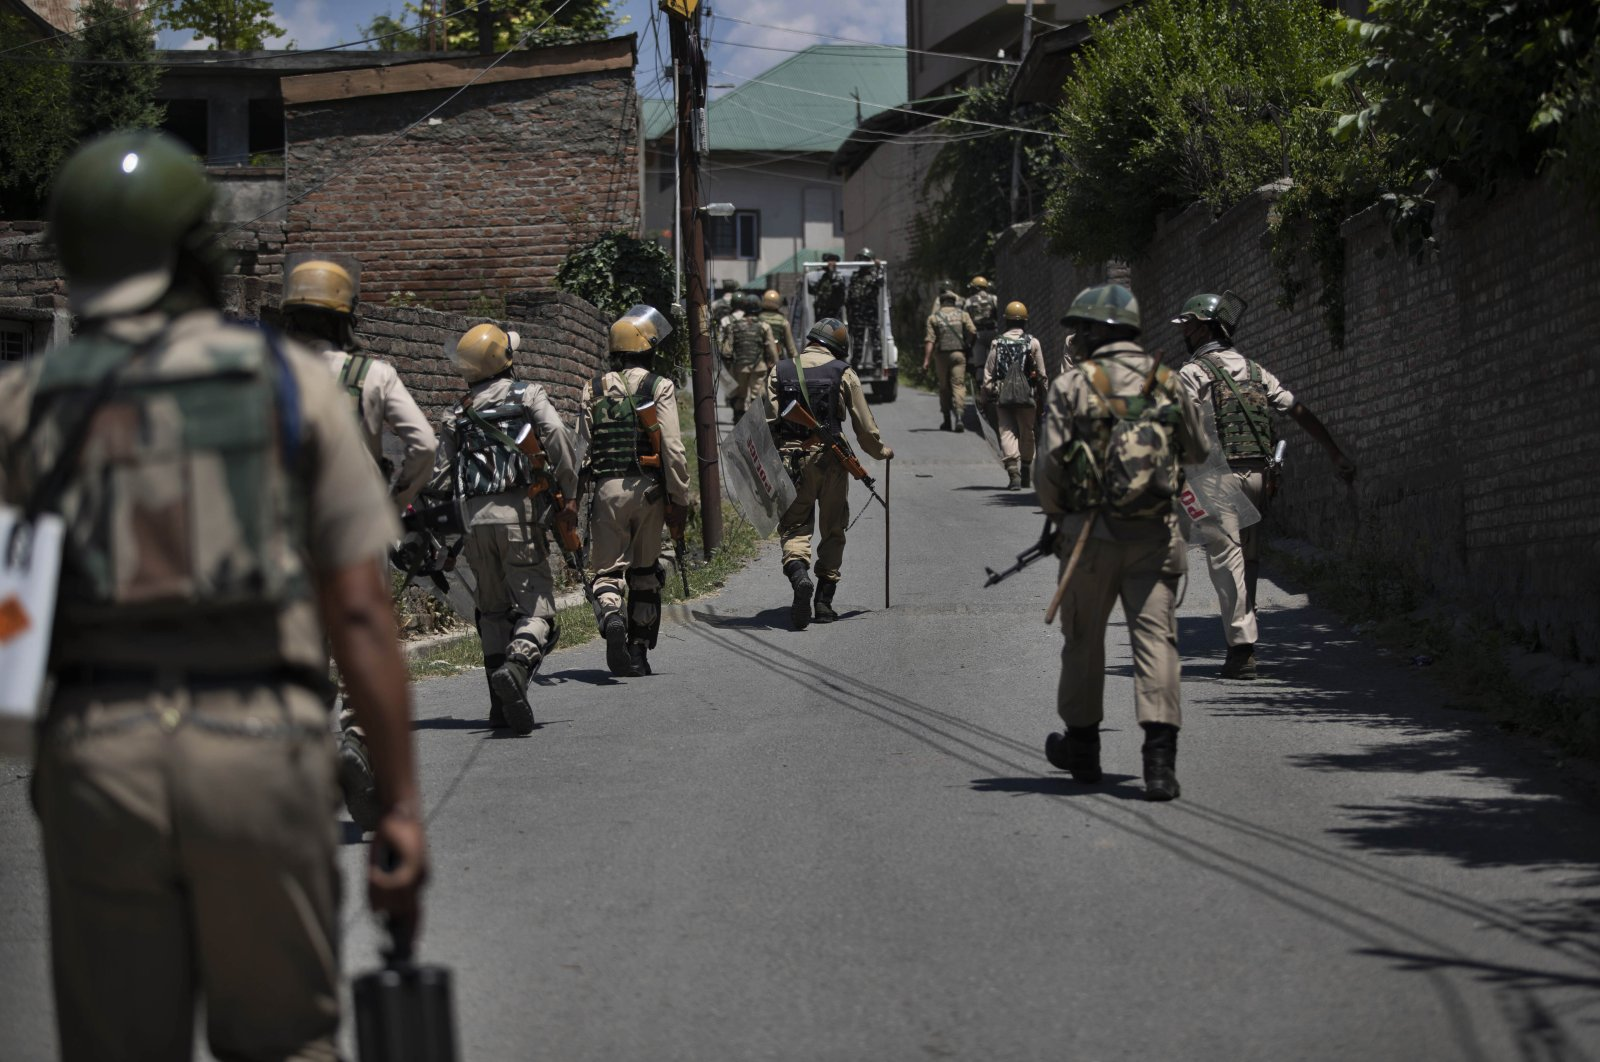 Indian soldiers return from the site of a gunbattle in Srinagar, Indian-controlled Kashmir, June 21, 2020. (AP Photo)